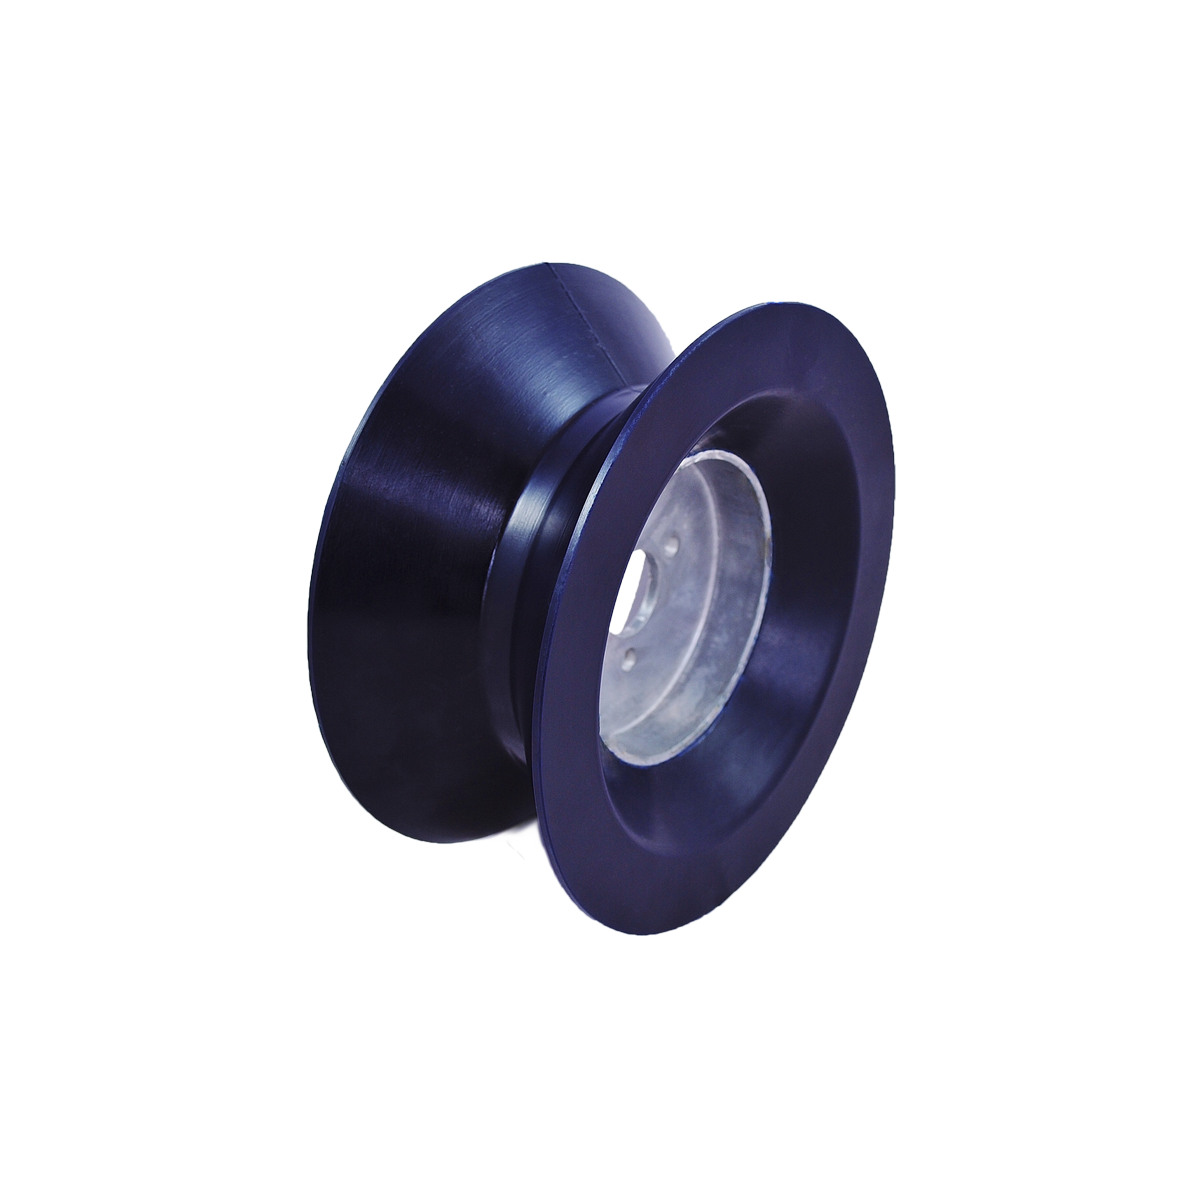 250-001-163 BLUE CHUNKY V-WHEEL